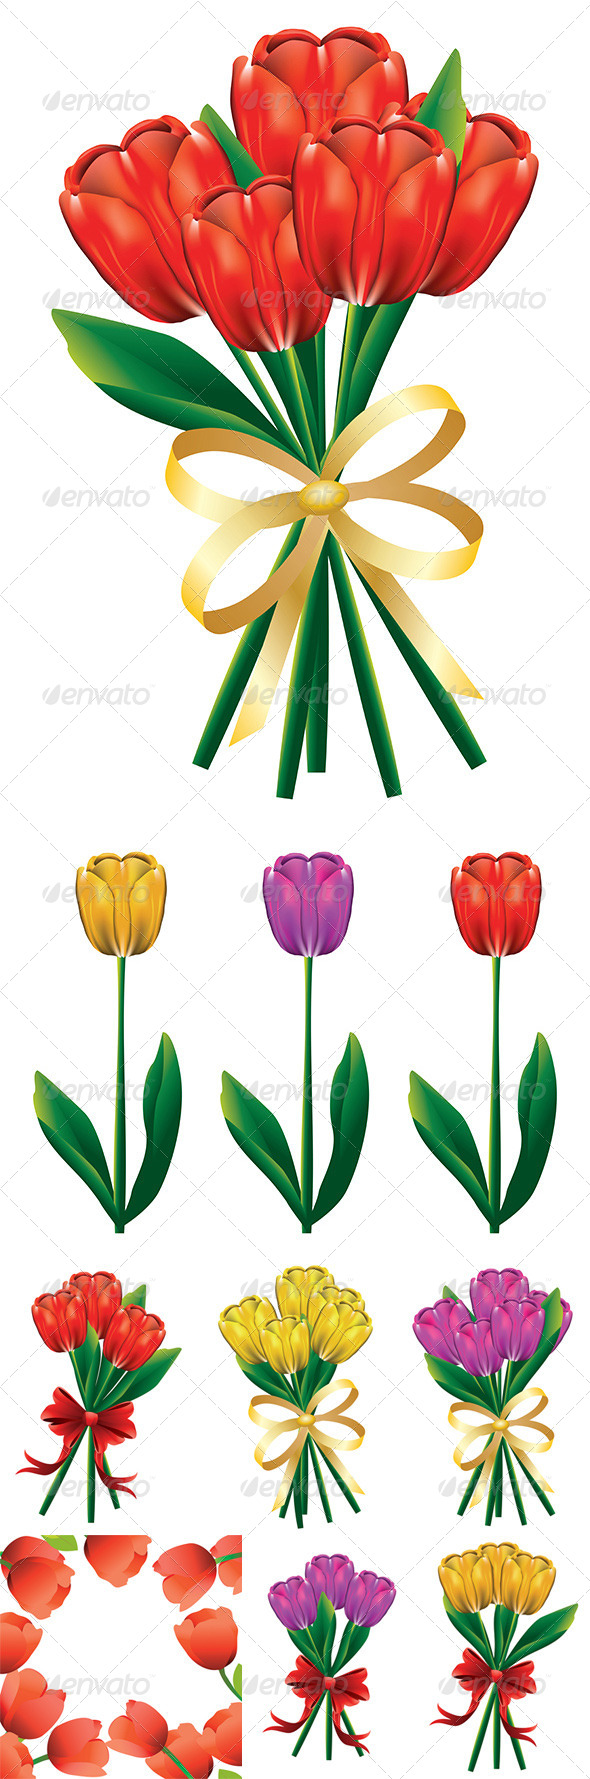 GraphicRiver Tulip Bouquet with Bow 8543391